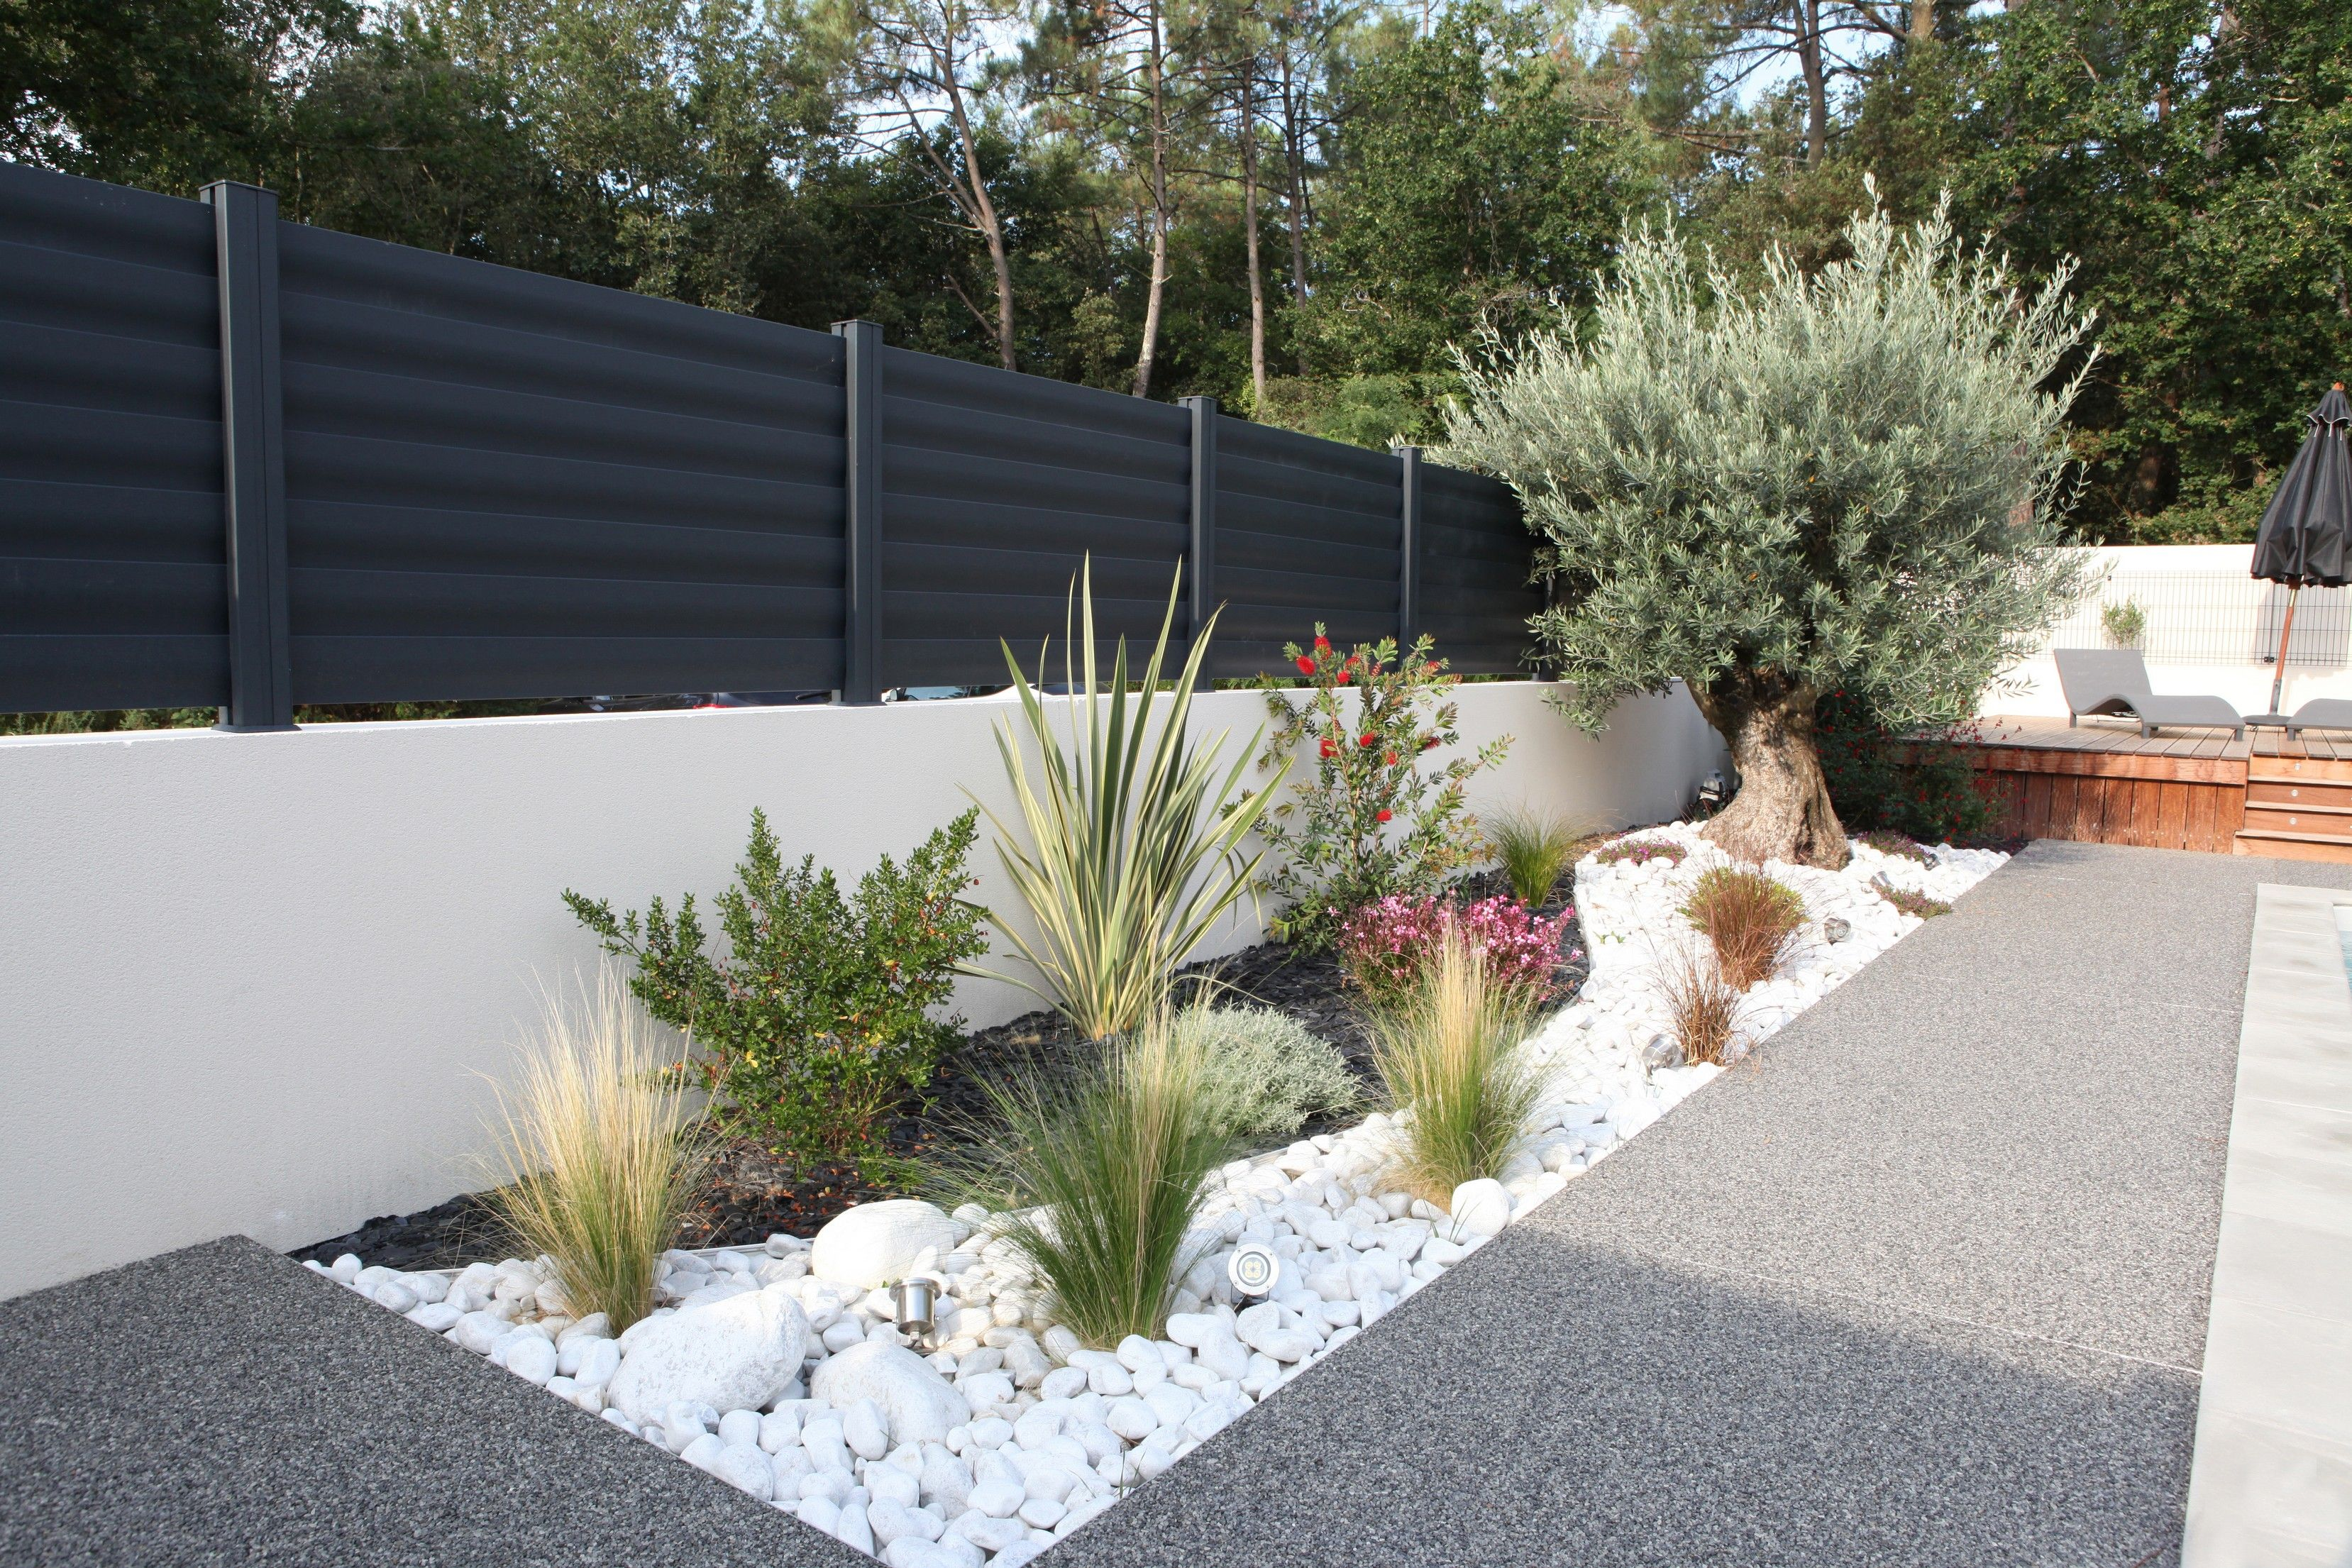 Cl tures aluminium mod le brise vue menuiserie cloturel aluminium plantes jardin for Cloture de jardin contemporaine